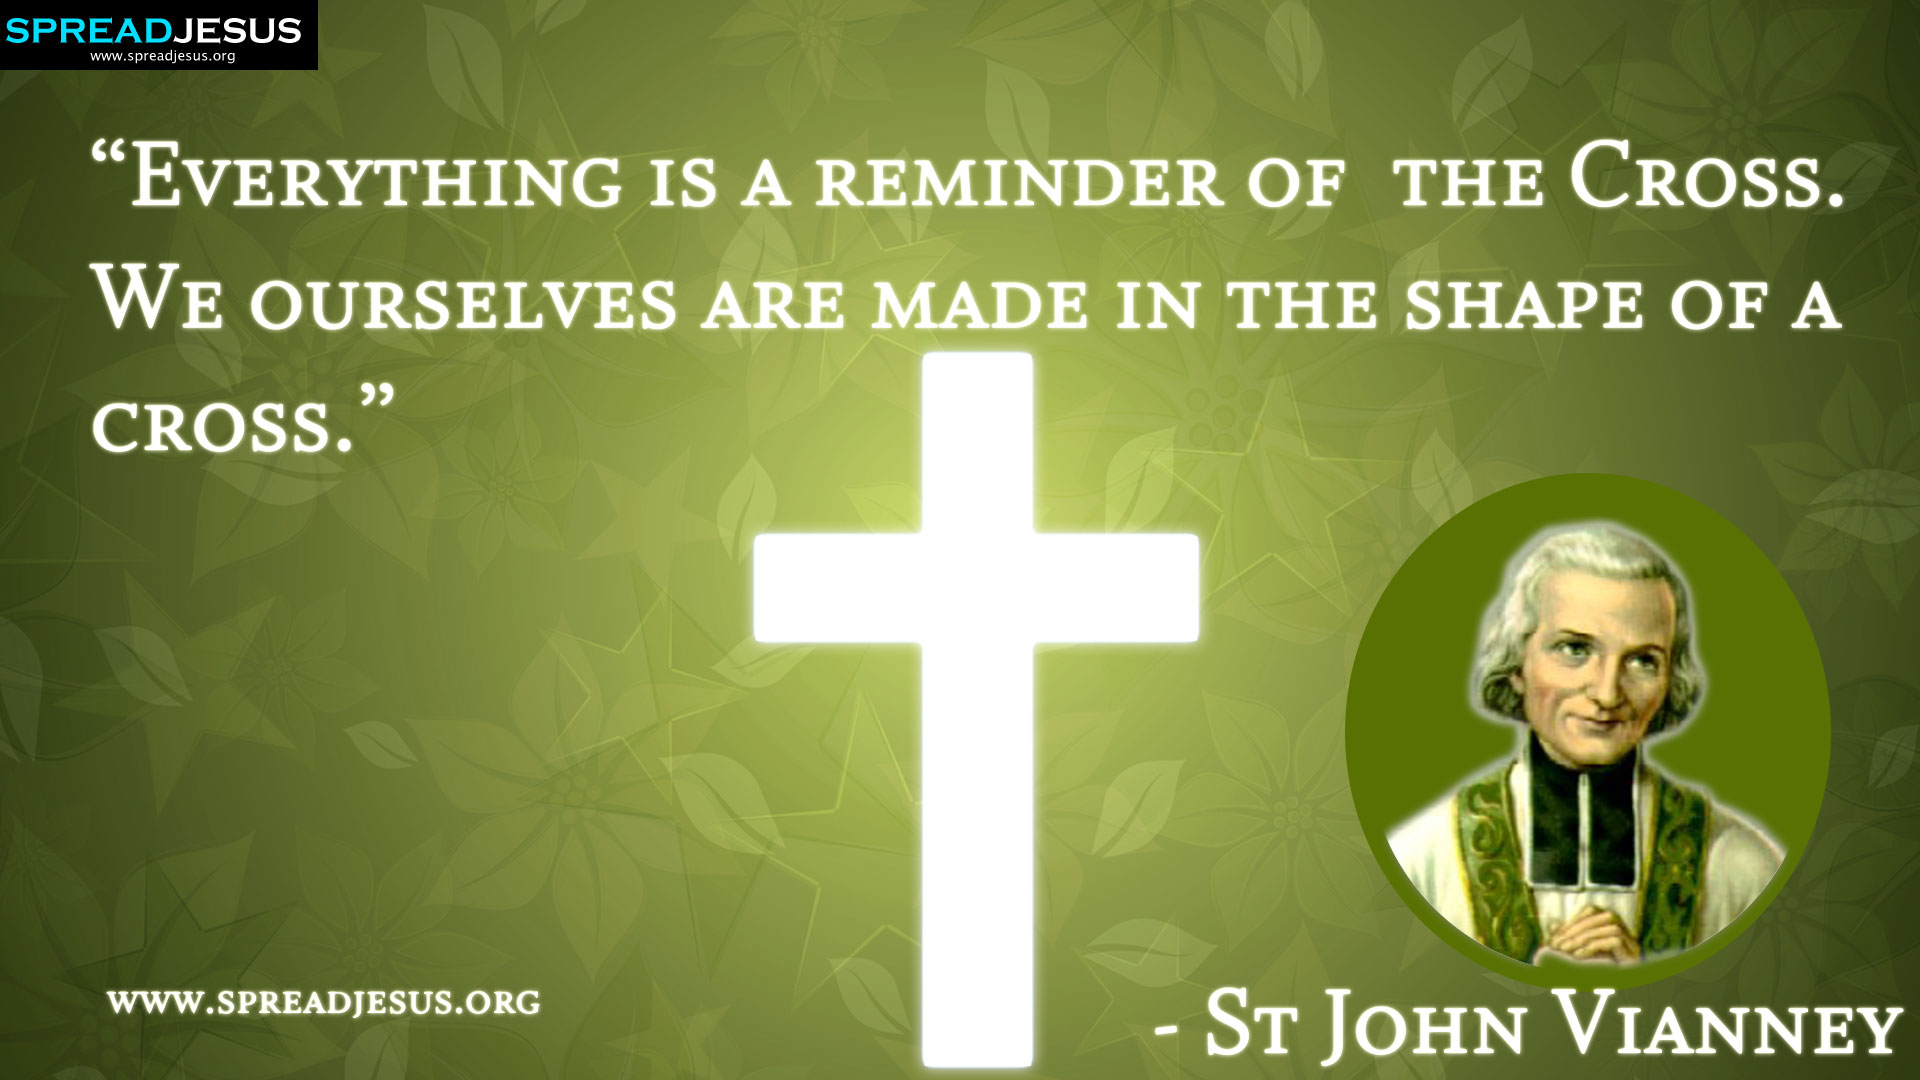 "St John Vianney:St John Vianney QUOTES HD-WALLPAPERS DOWNLOAD:CATHOLIC SAINT QUOTES HD-WALLPAPERS DOWNLOAD-""Everything is a reminder of the Cross. We ourselves are made in the shape of a cross."" - St John Vianney-spreadjesus.org"